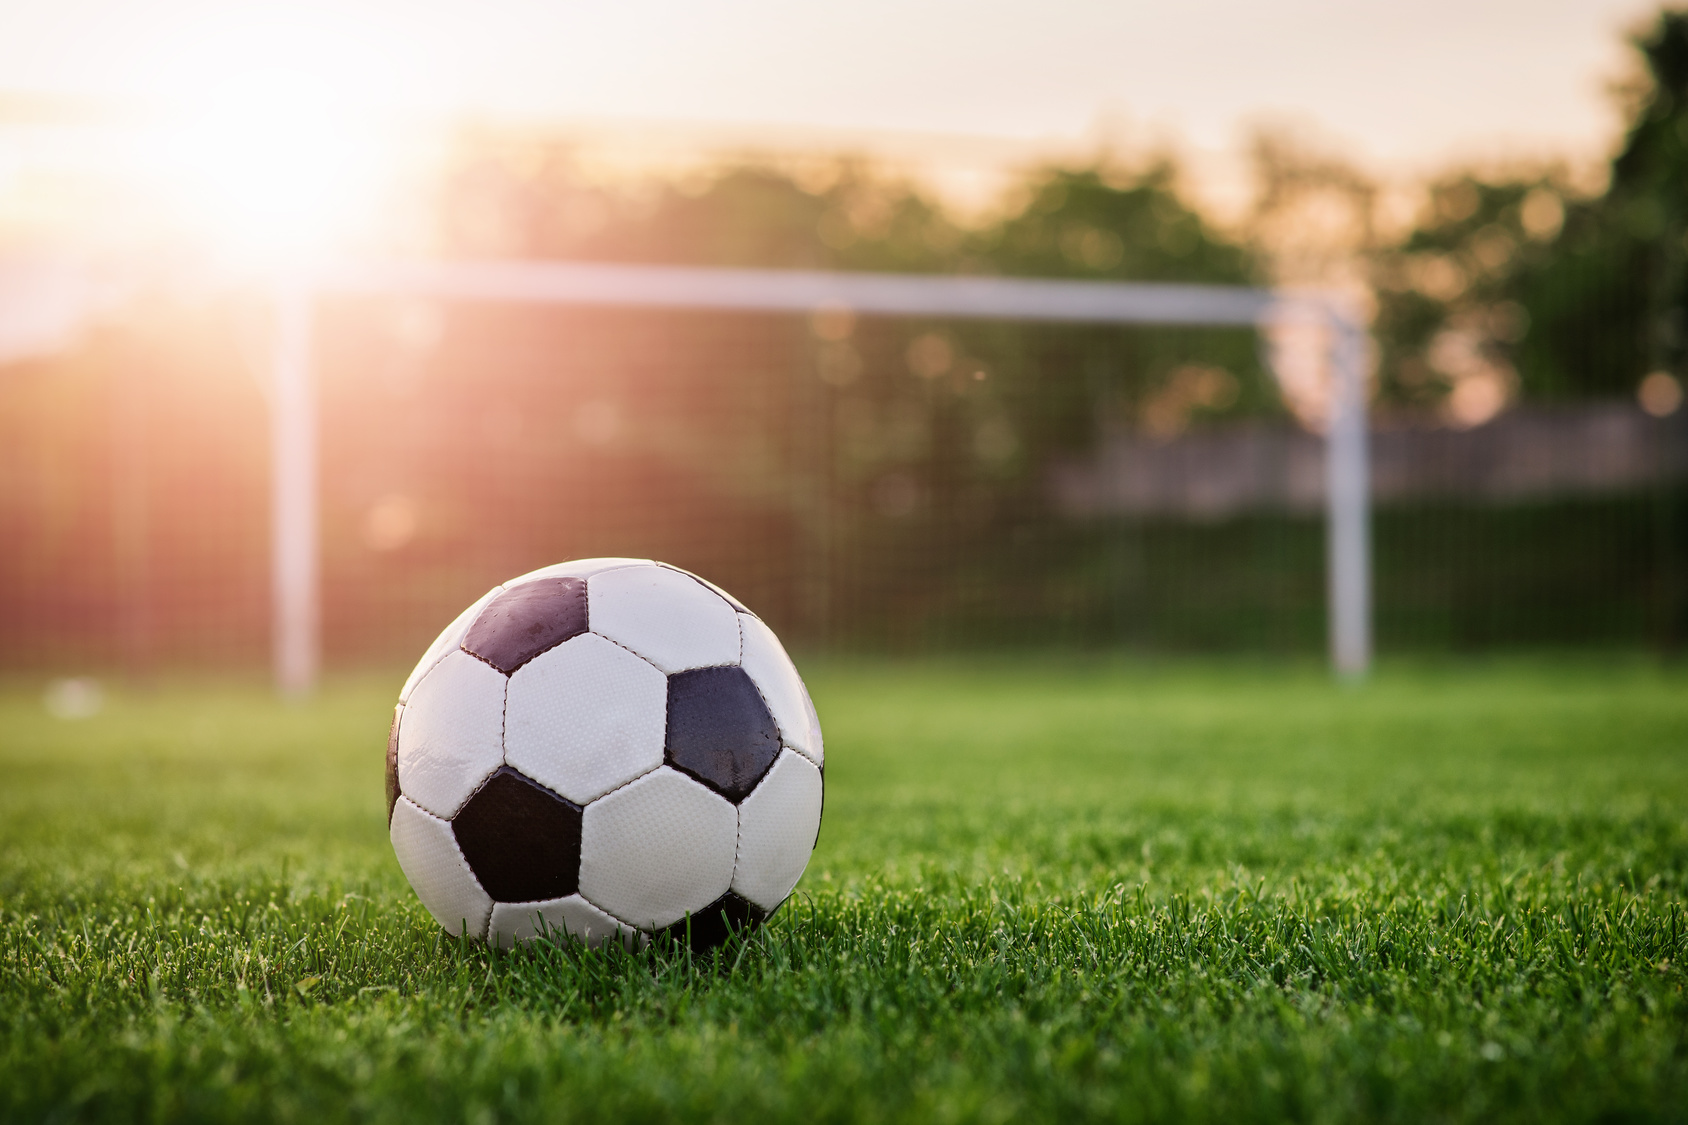 Queens and Annan football matches OFF